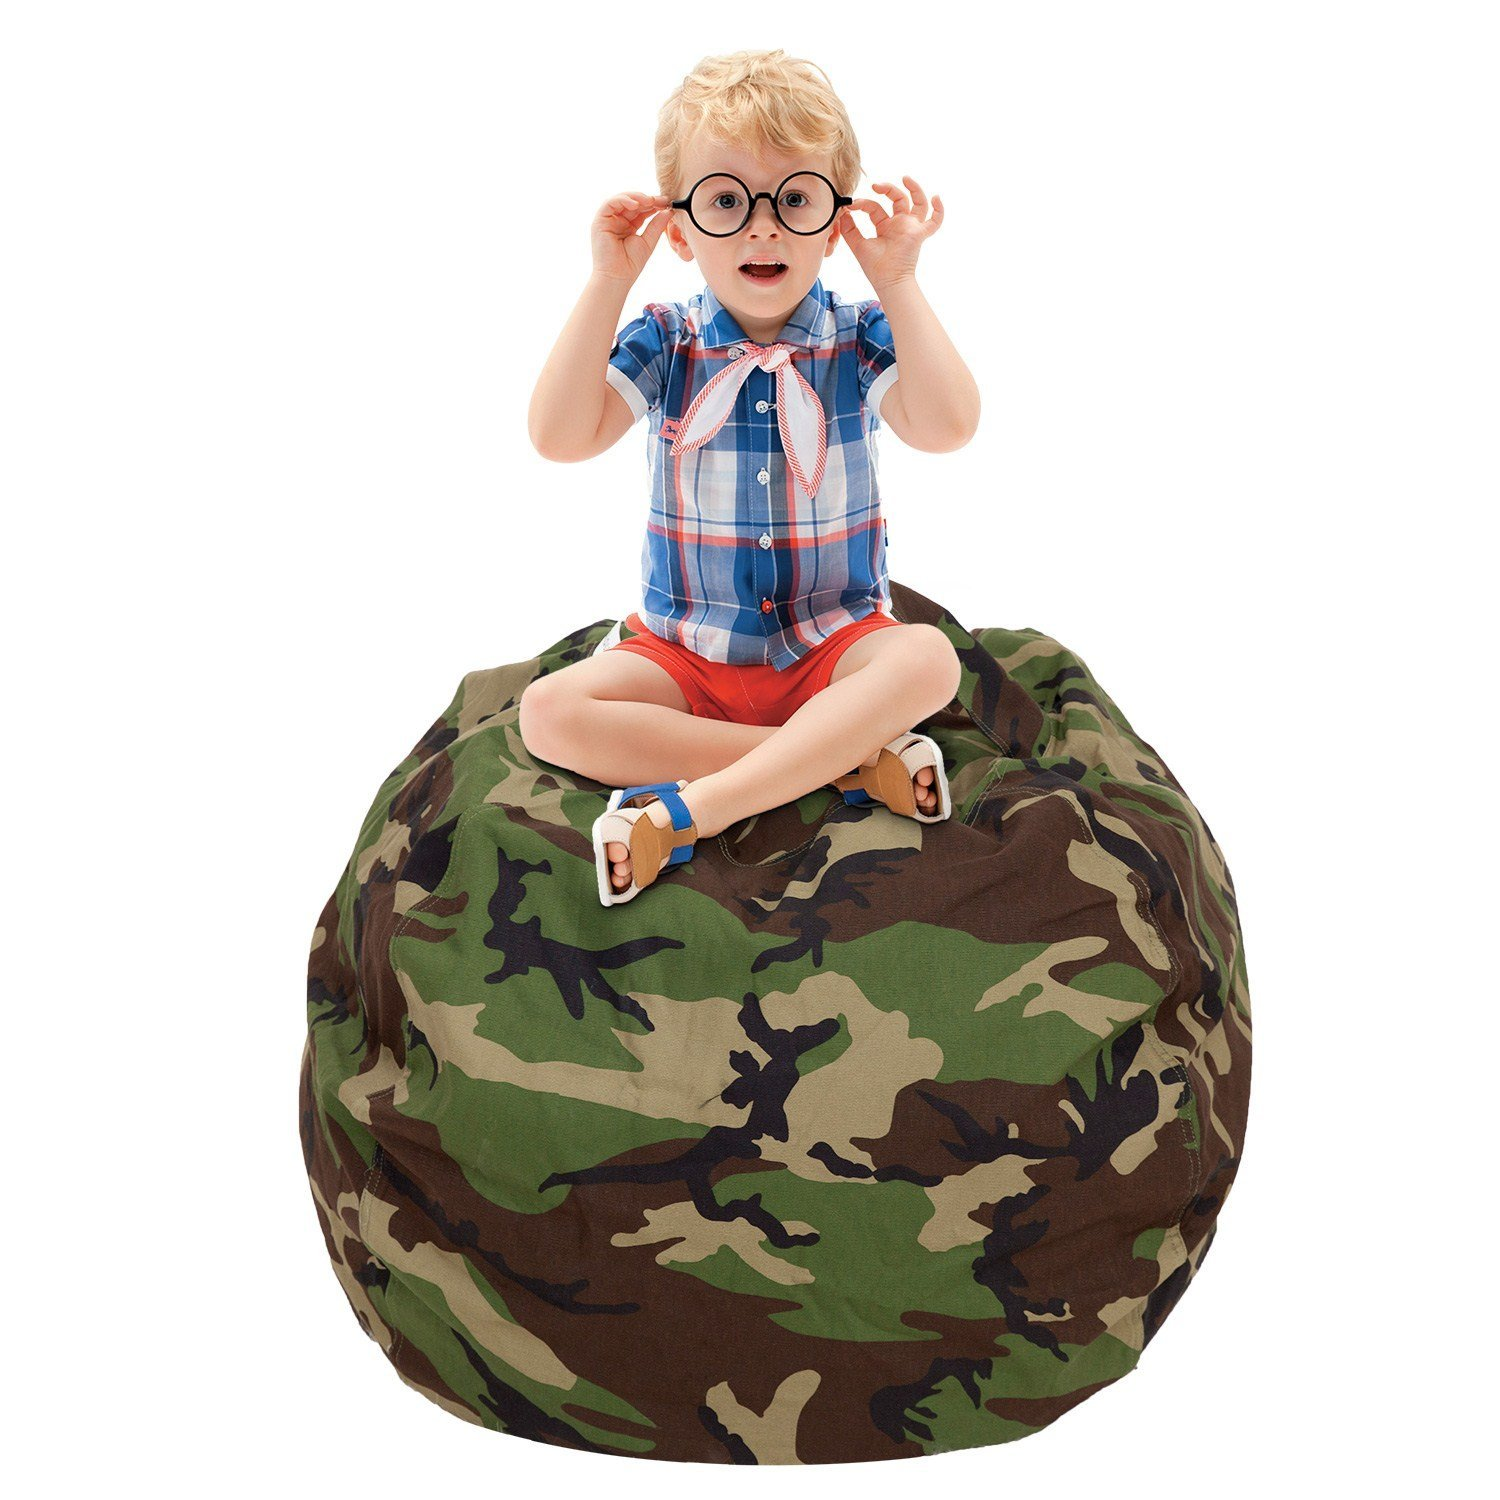 CALA Stuffed Animal Storage Bean Bag Chair- EXTRA LARGE 38'' Kids Soft Toy Storage - 100% Cotton Canvas Bean Bag Chair(Camouflage)